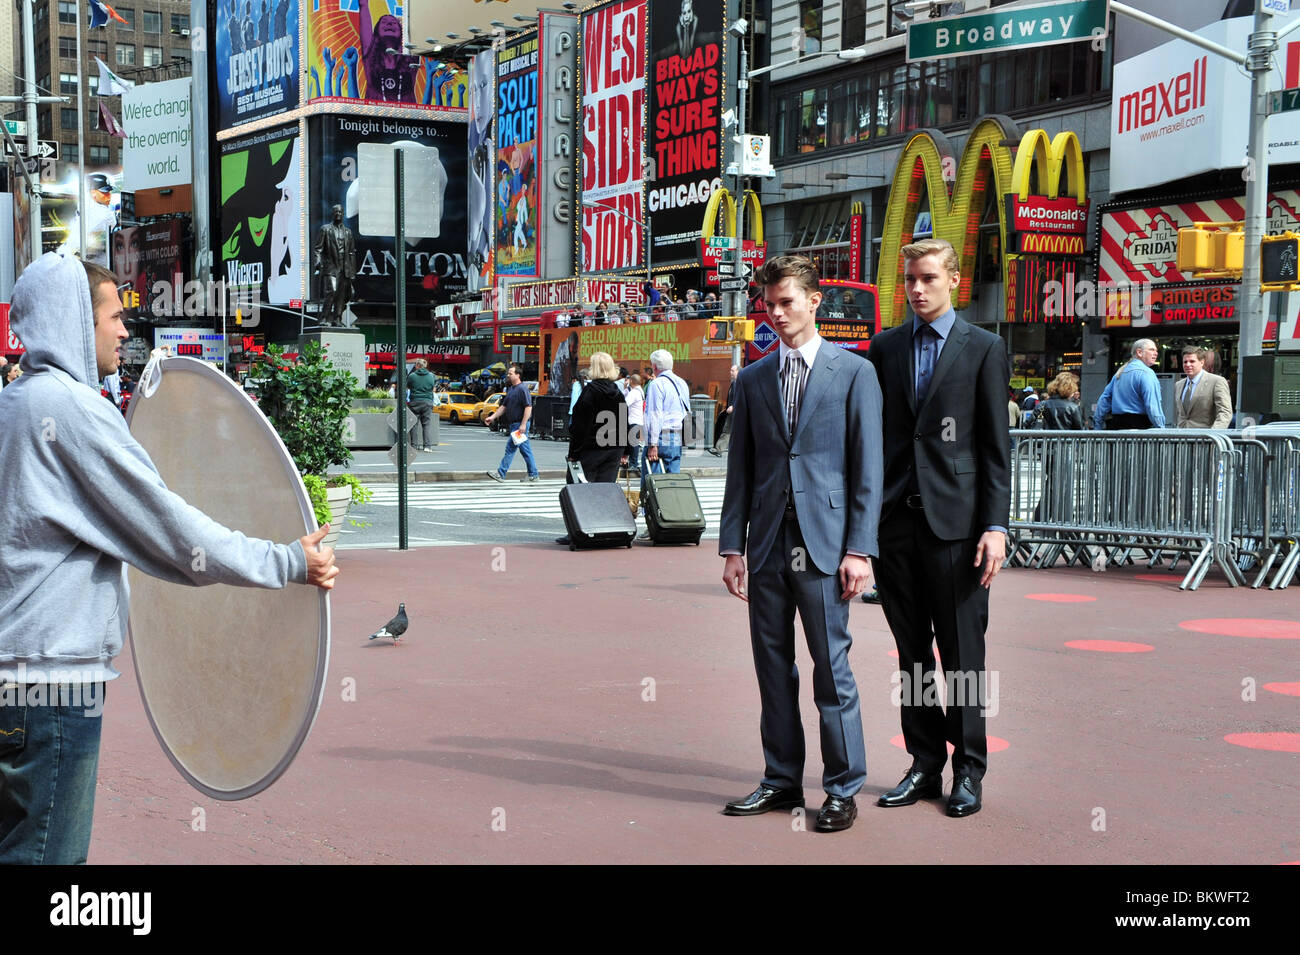 Man Models Time Square Manhattan New York NY USA - Stock Image